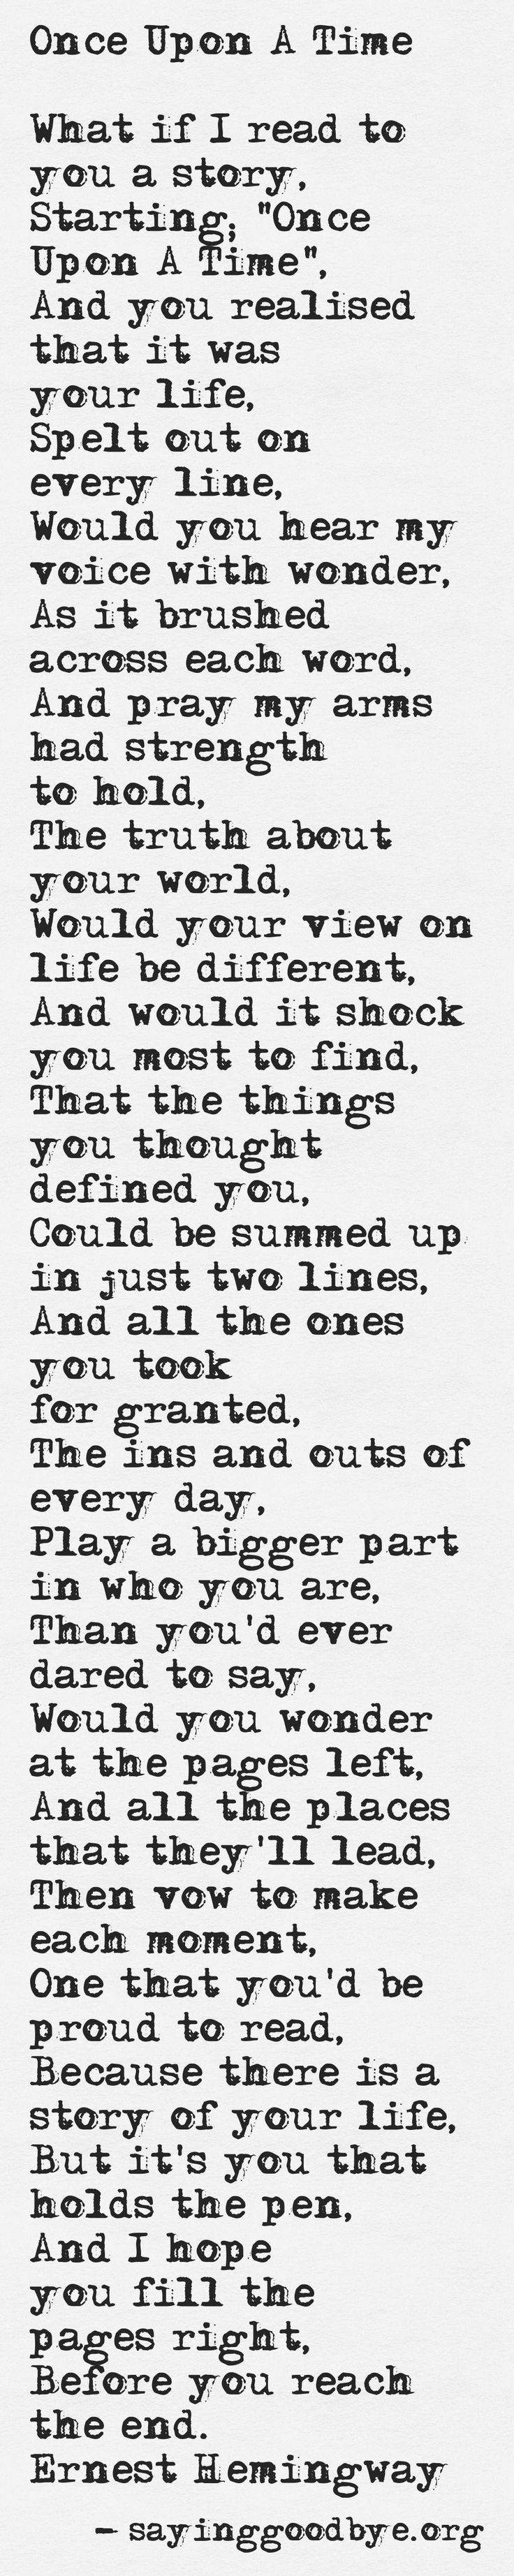 Earnest Hemingway. But it's you that holds the pen. This hit me like a ton of bricks. So powerful.